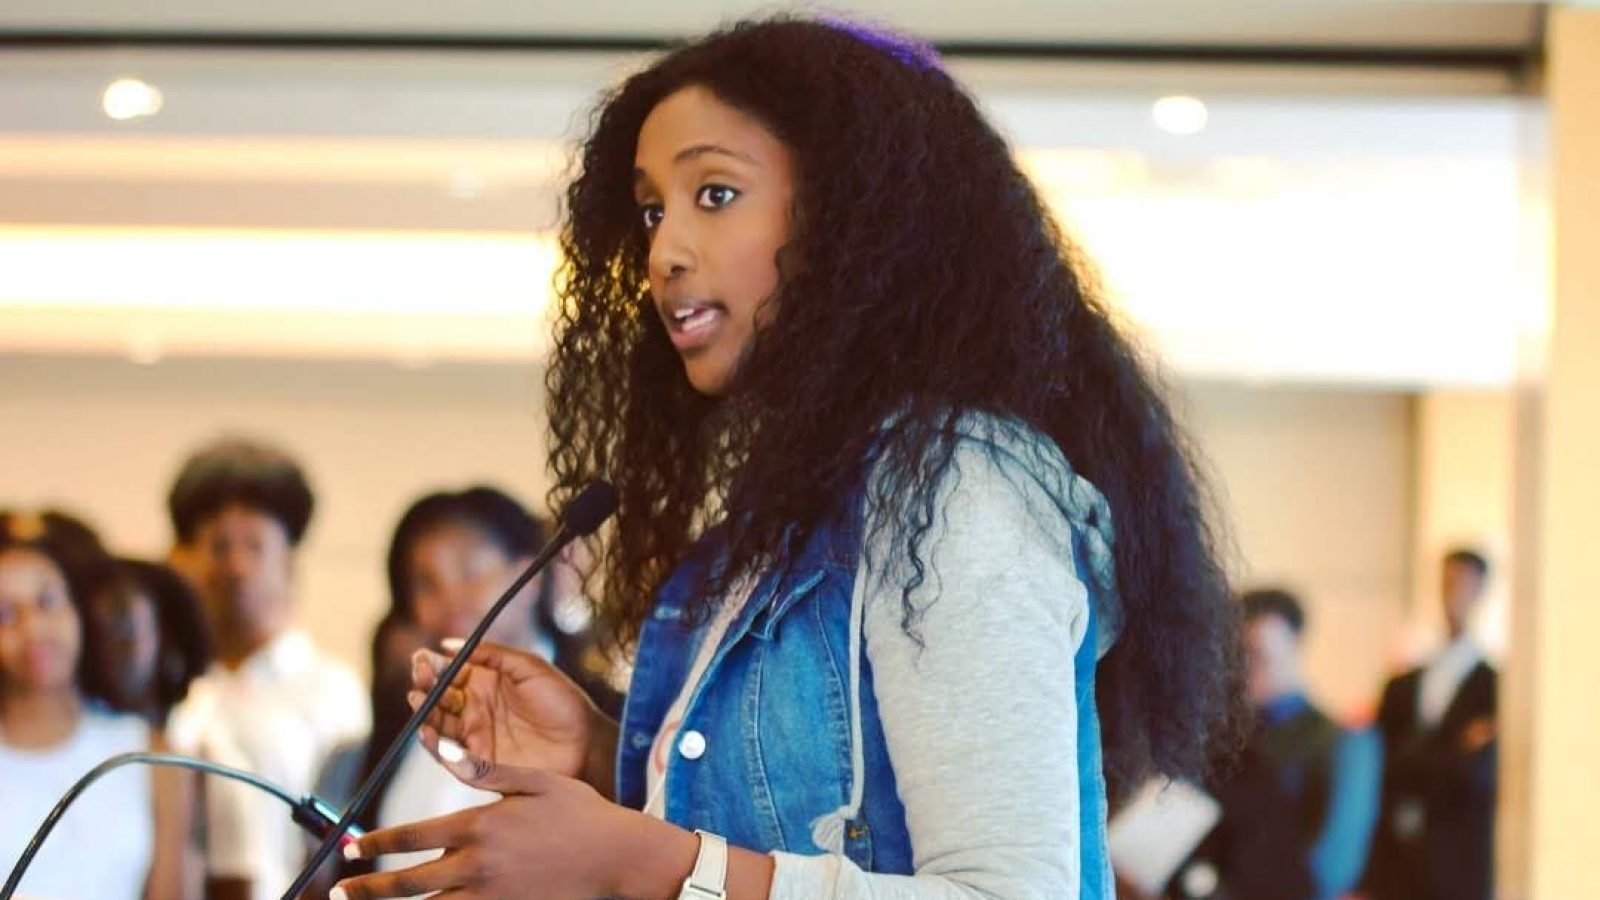 Bserat speaks to a group of Black college students from across the United States